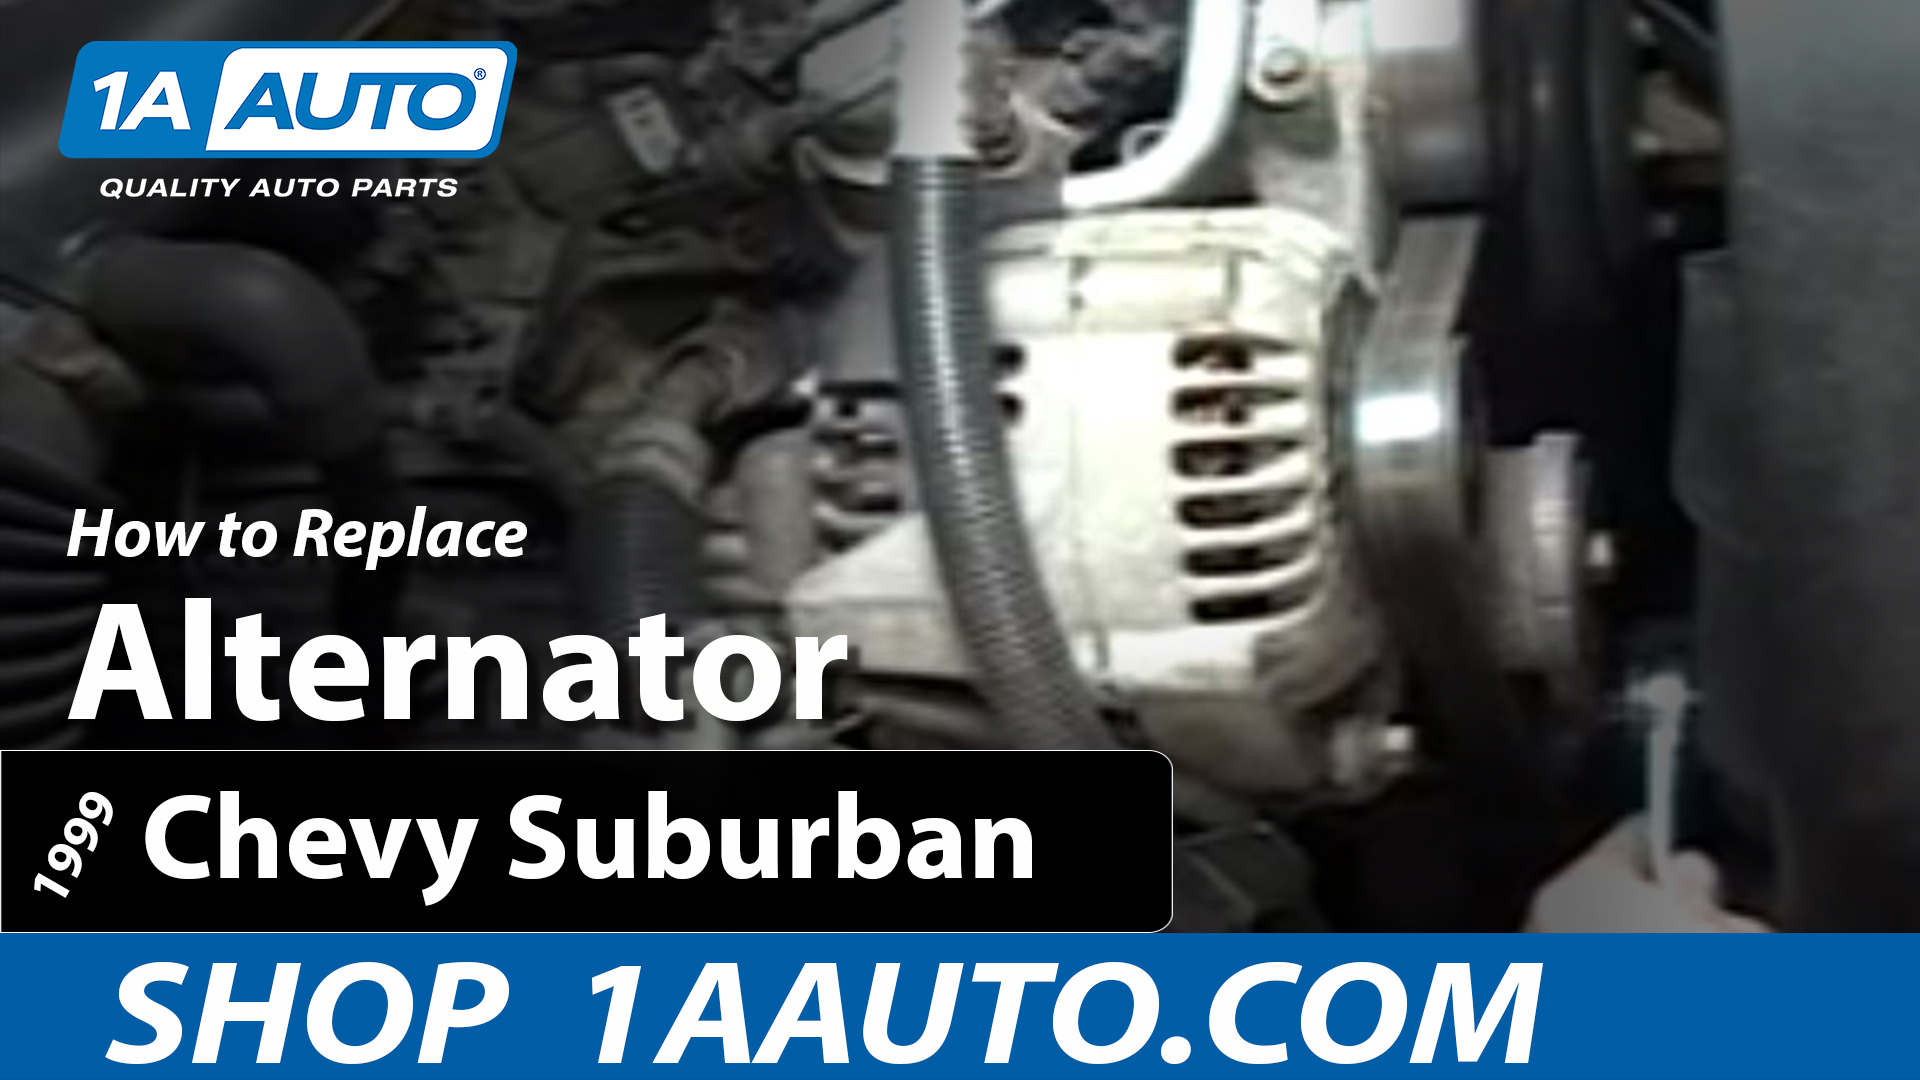 How To Replace Alternator 96-99 Chevy Suburban